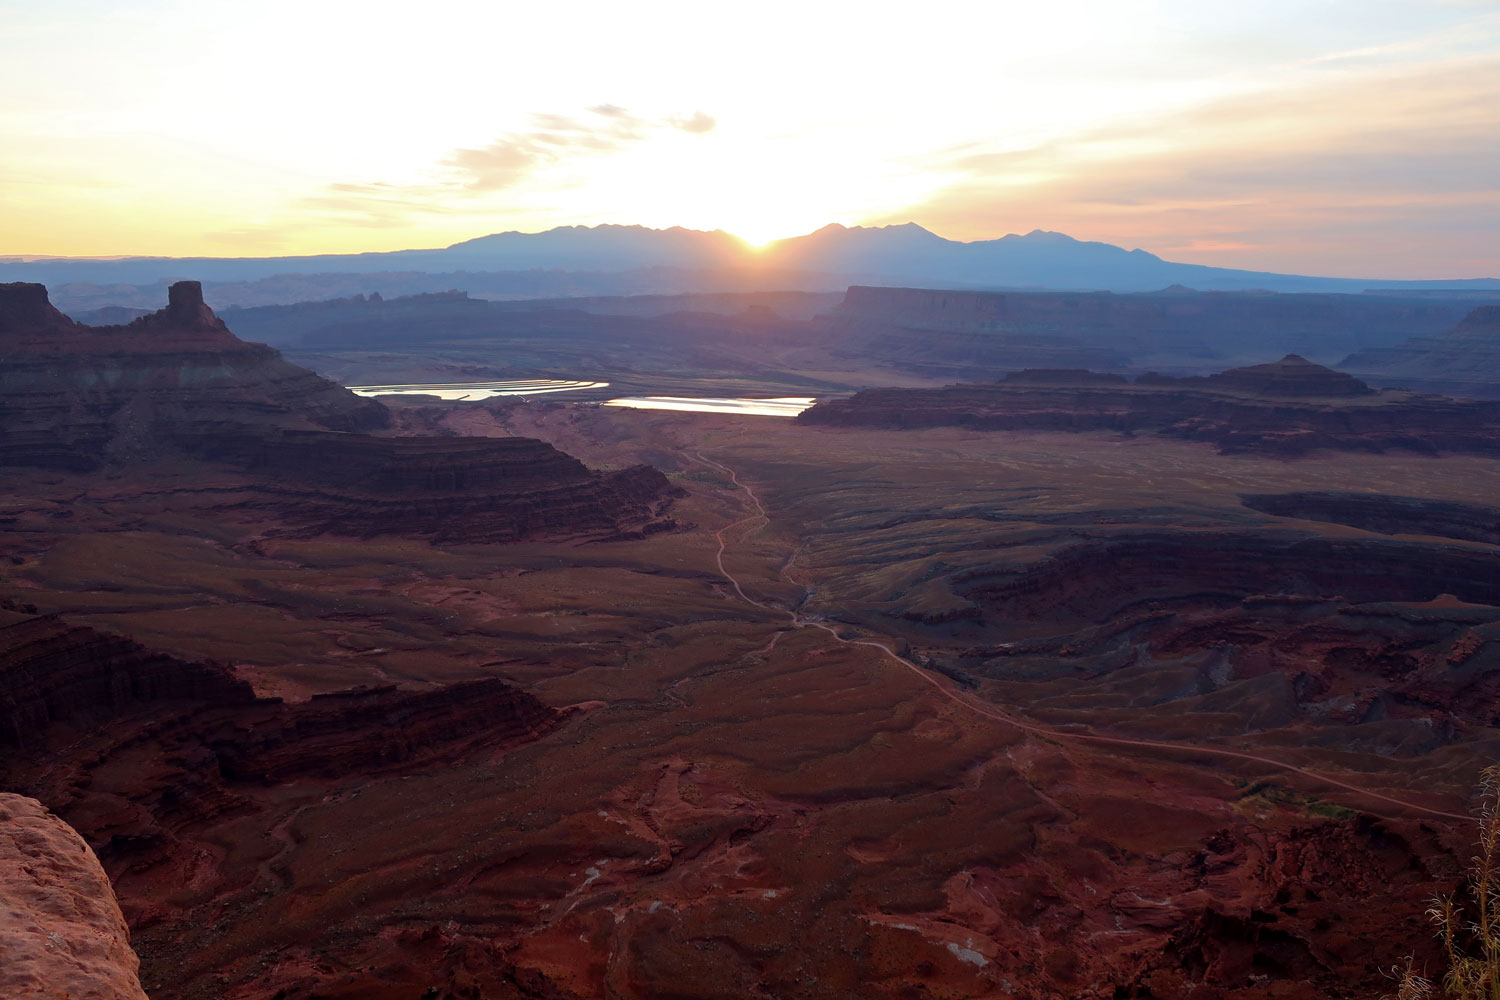 Watch the Sunset and/or Sunrise at Dead Horse Point State Park